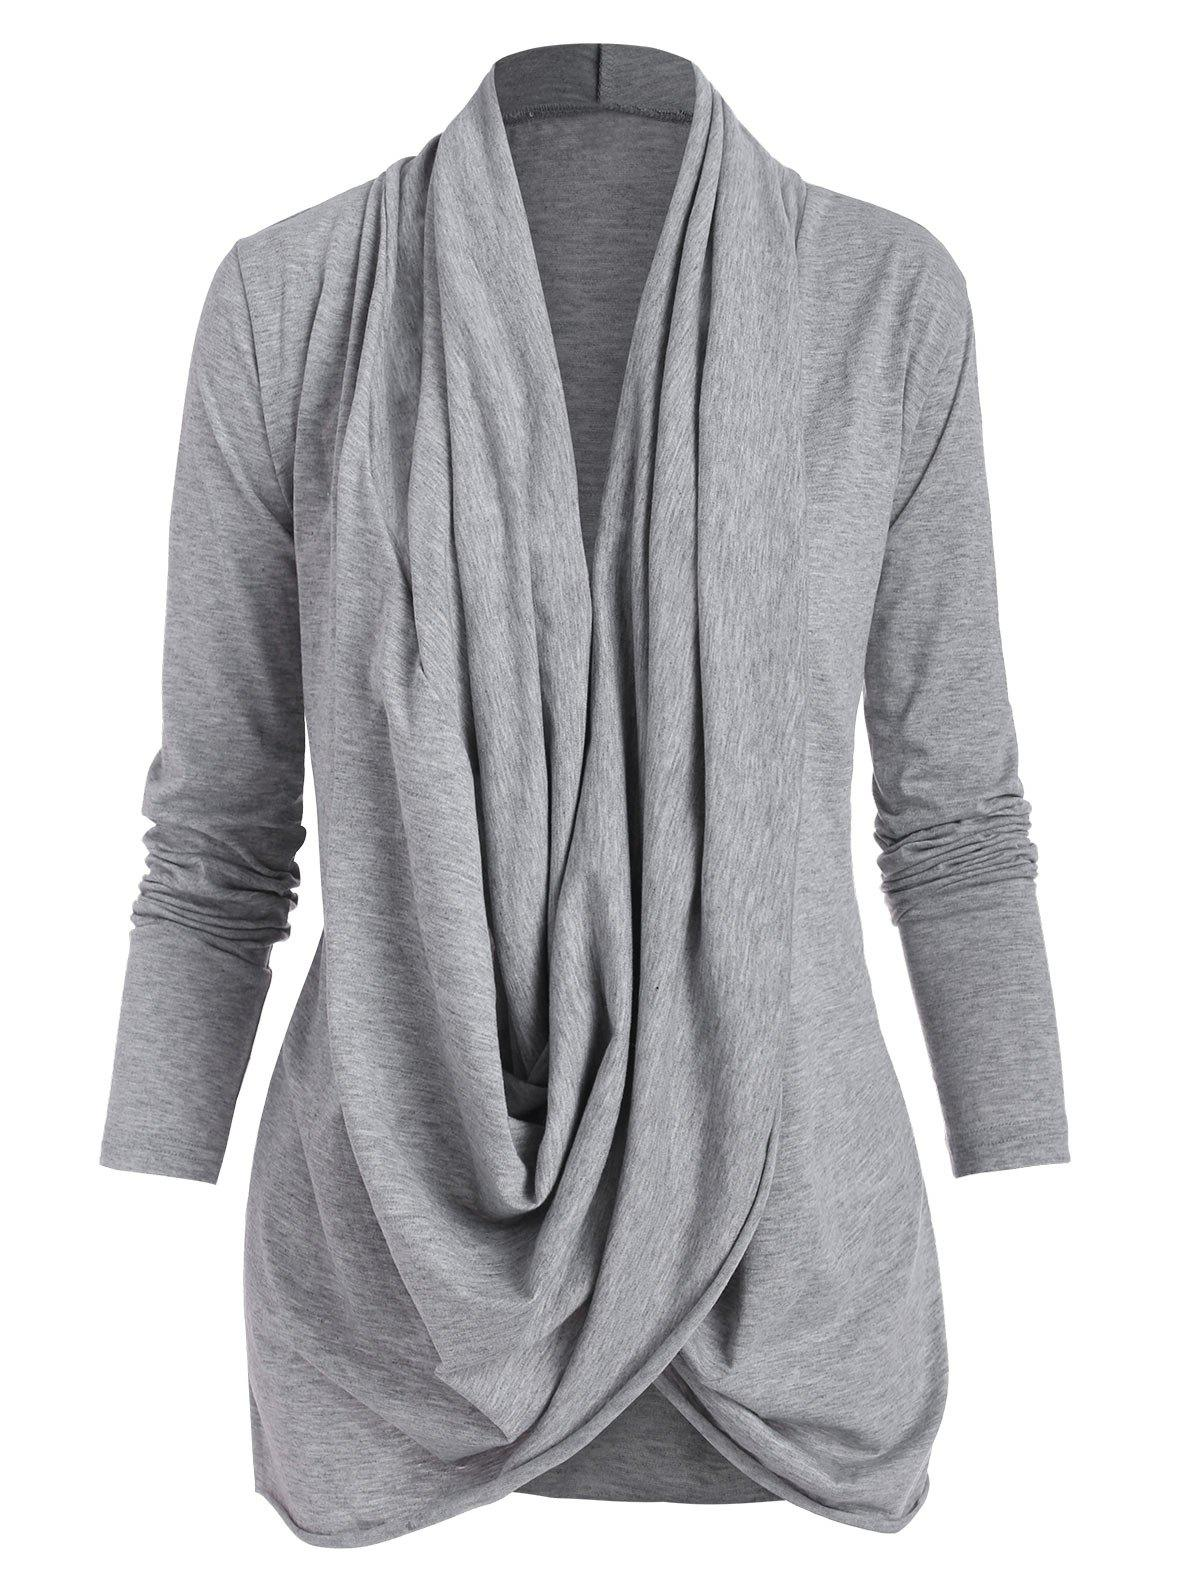 Draped Cowl Front Crossover Long Sleeve Tee - GRAY M